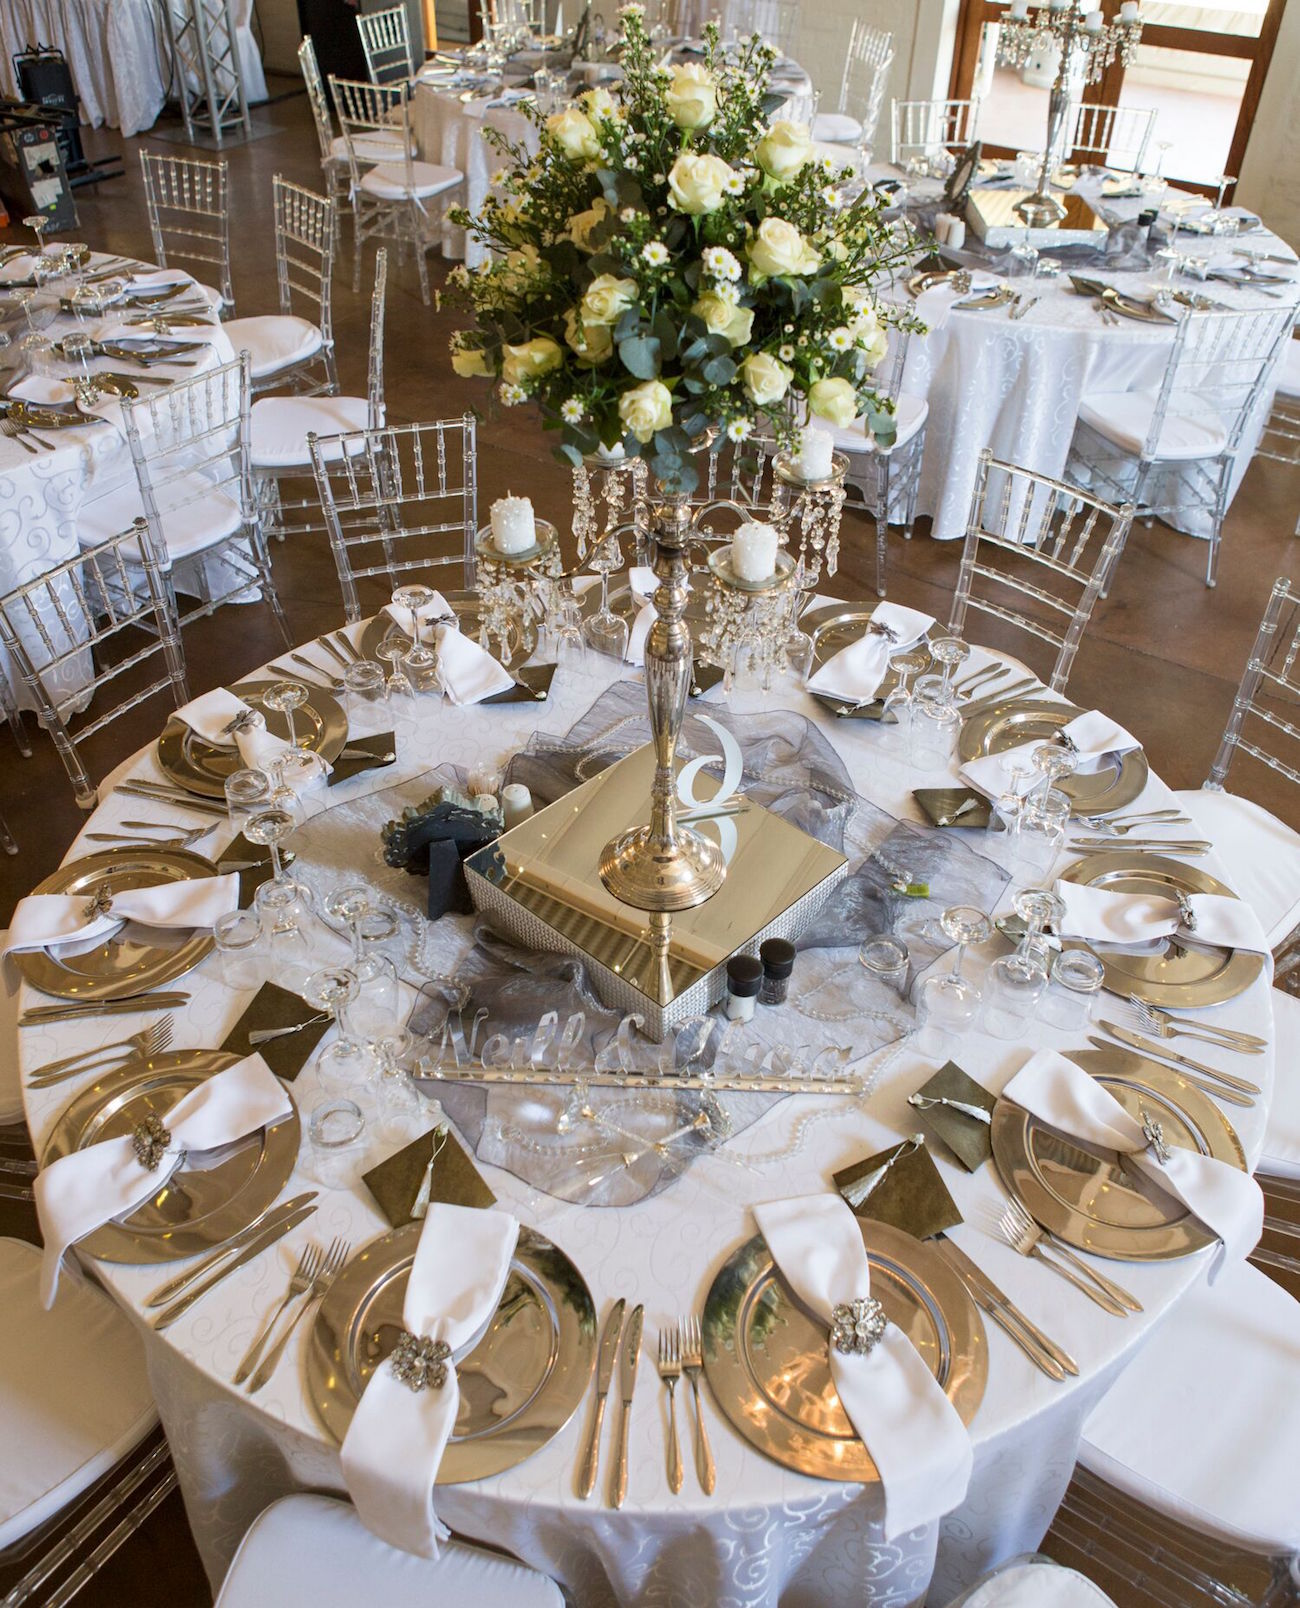 White & Silver Wedding Decor | Image: Daniel West